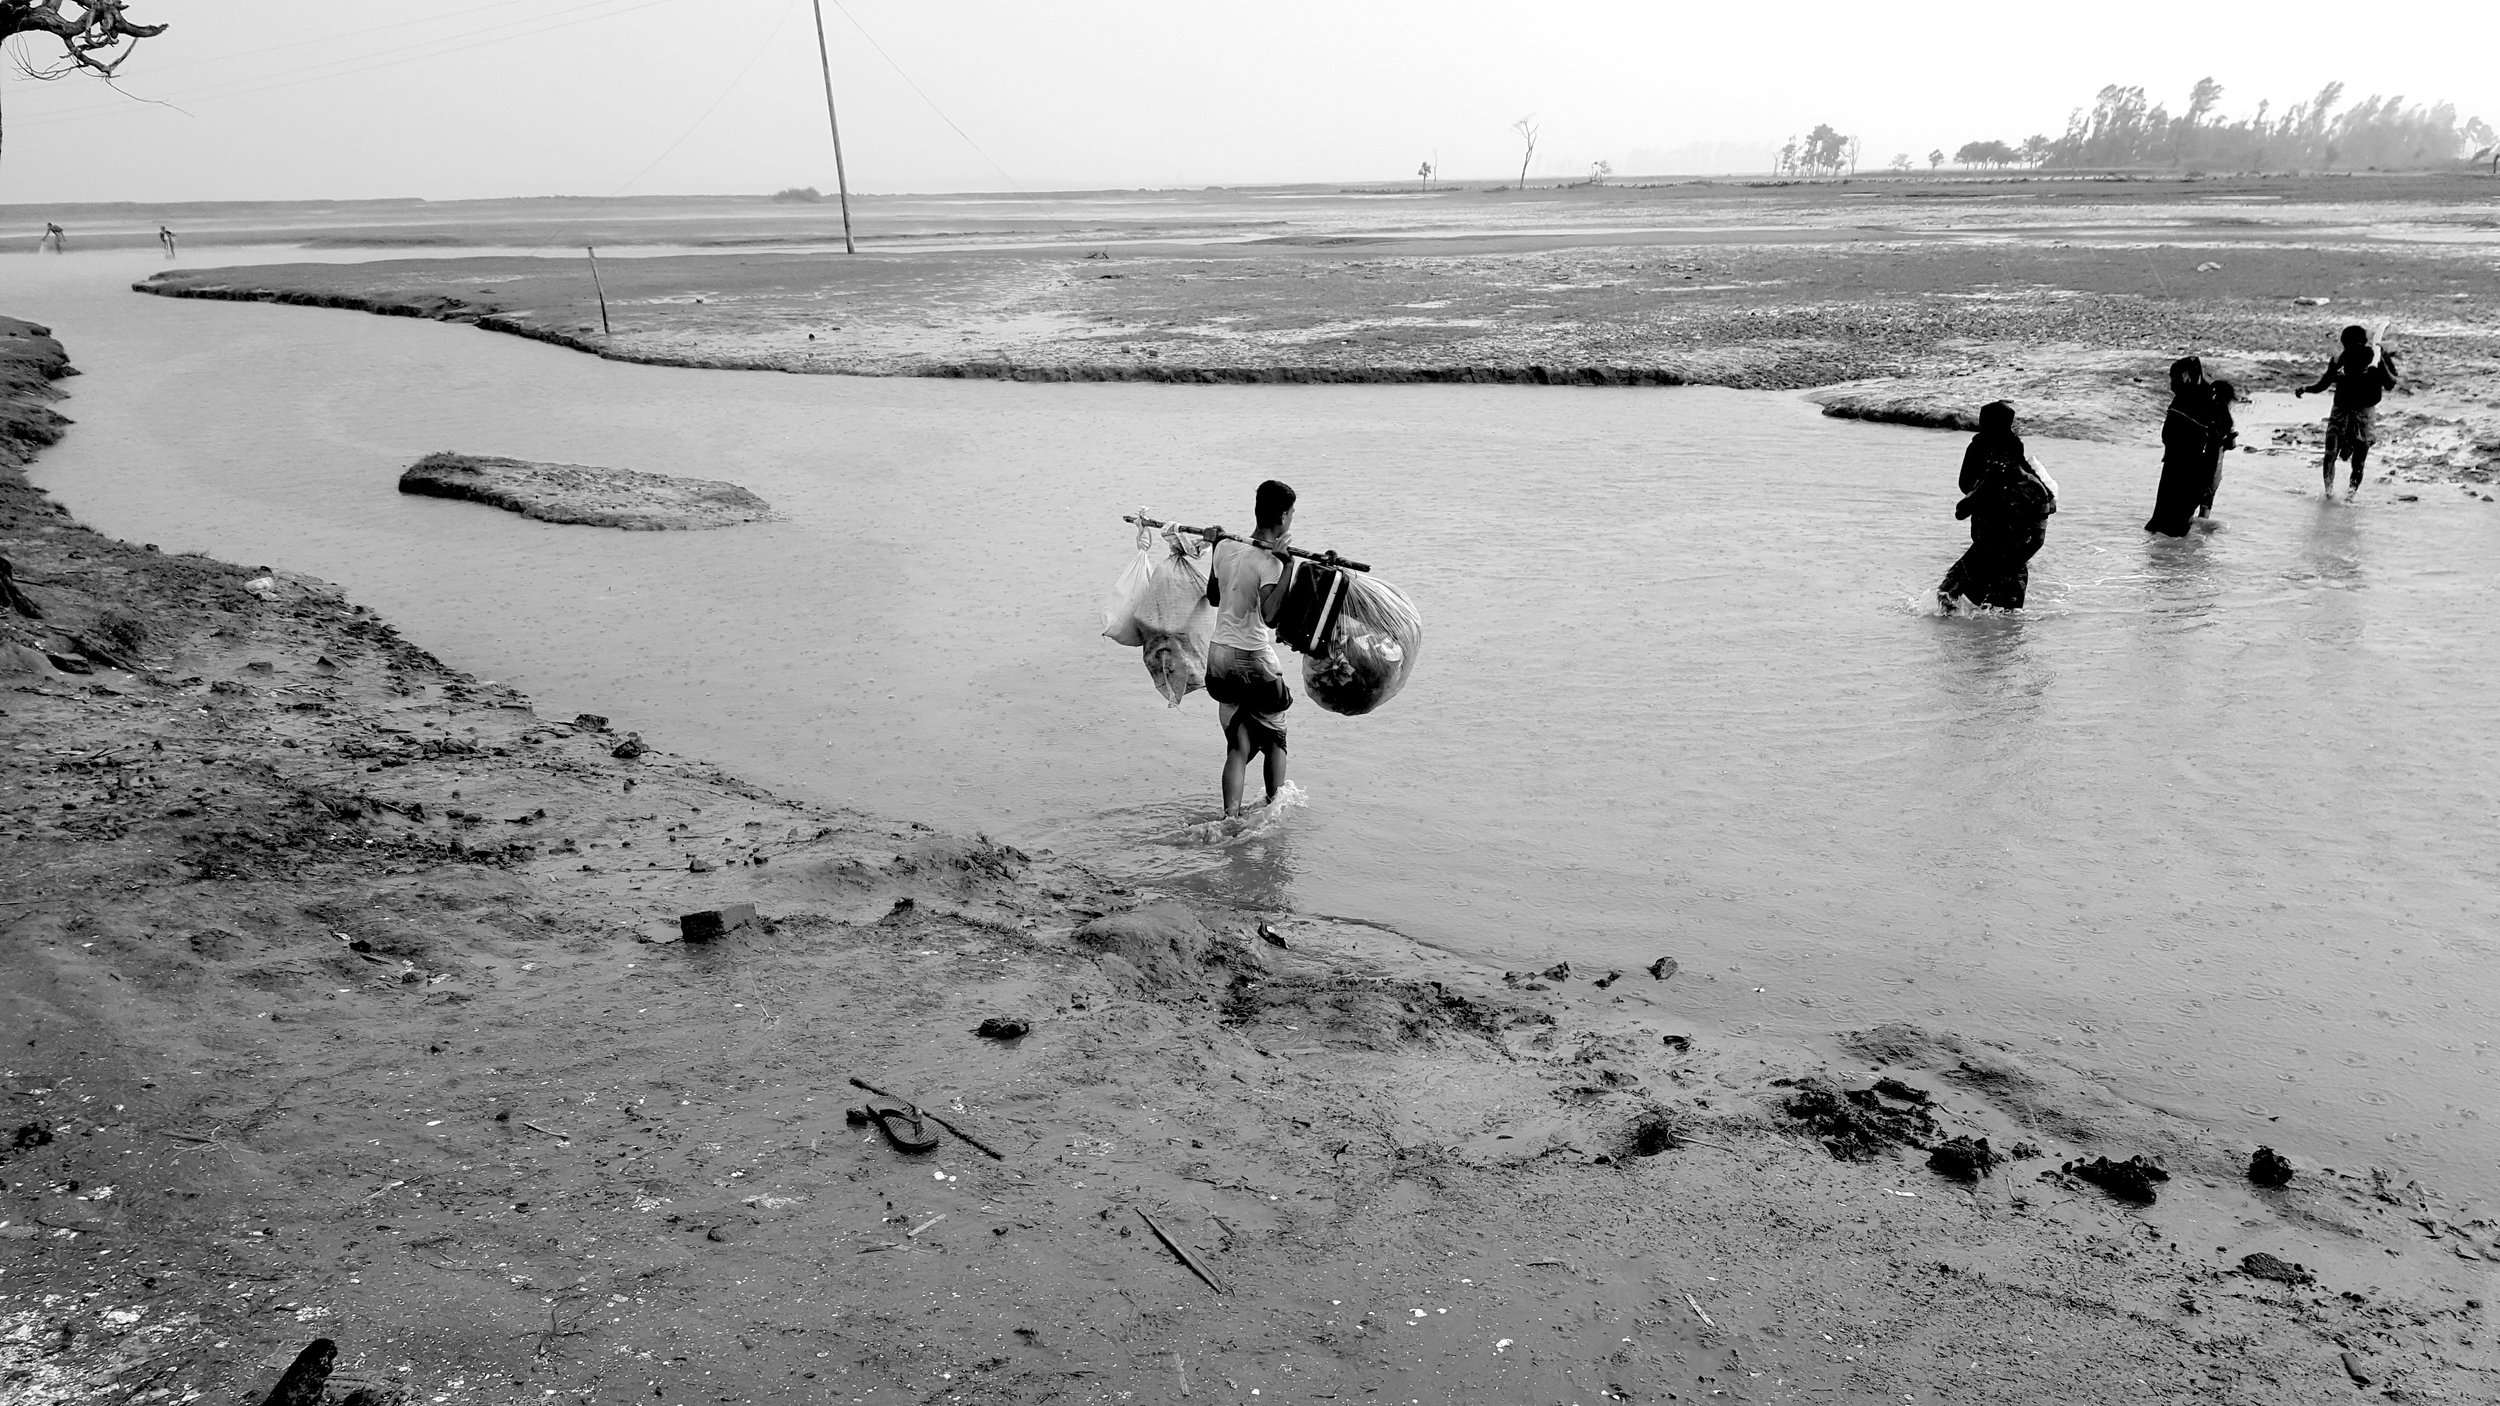 Rohingya carrying their belongings over harsh terrain. Many Rohingya refugees are forced to walk through sites clustered with landmines in order to reach safety. This group crossed the border and arrived on the shores of Bangladesh at 4 am. They are fortunate compared to the nearly four thousand Rohingya stuck at the border of Myanmar.